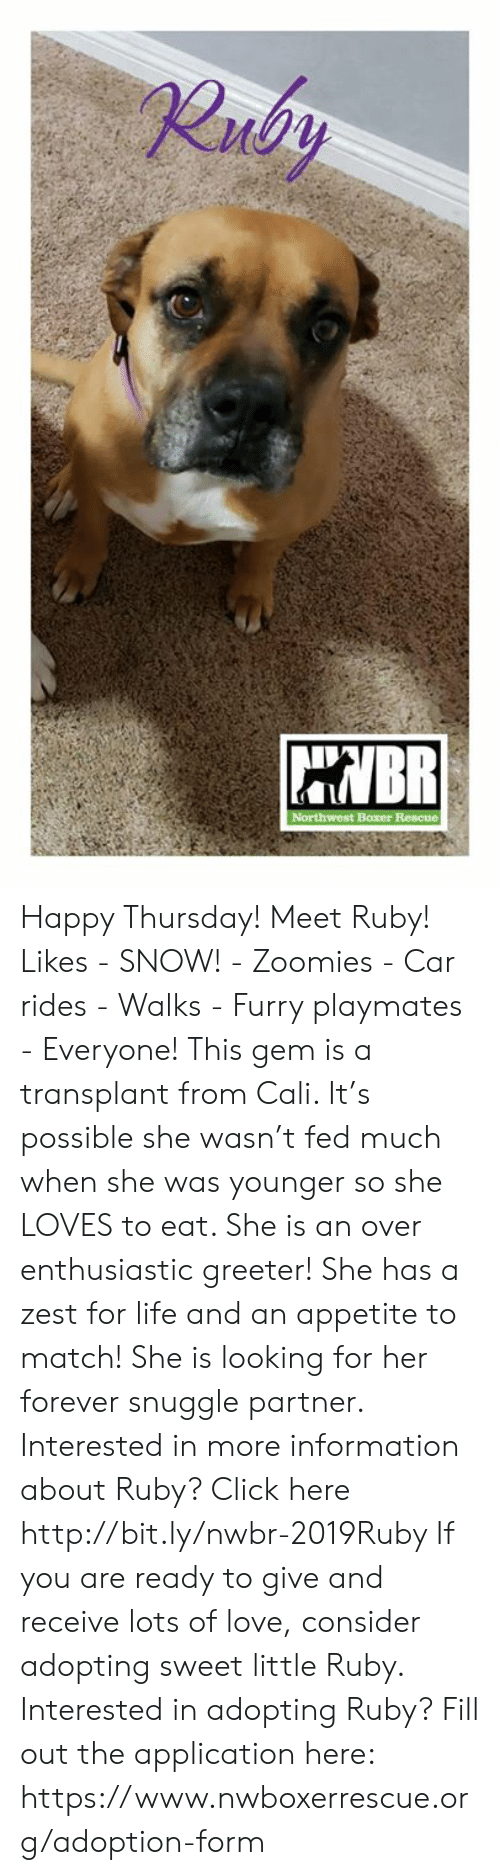 playmates: Happy Thursday! Meet Ruby!    Likes - SNOW!  - Zoomies - Car rides - Walks - Furry playmates - Everyone!  This gem is a transplant from Cali.  It's possible she wasn't fed much when she was younger so she LOVES to eat.  She is an over enthusiastic greeter! She has a zest for life and an appetite to match! She is looking for her forever snuggle partner.  Interested in more information about Ruby? Click here http://bit.ly/nwbr-2019Ruby   If you are ready to give and receive lots of love, consider adopting sweet little Ruby. Interested in adopting Ruby? Fill out the application here: https://www.nwboxerrescue.org/adoption-form